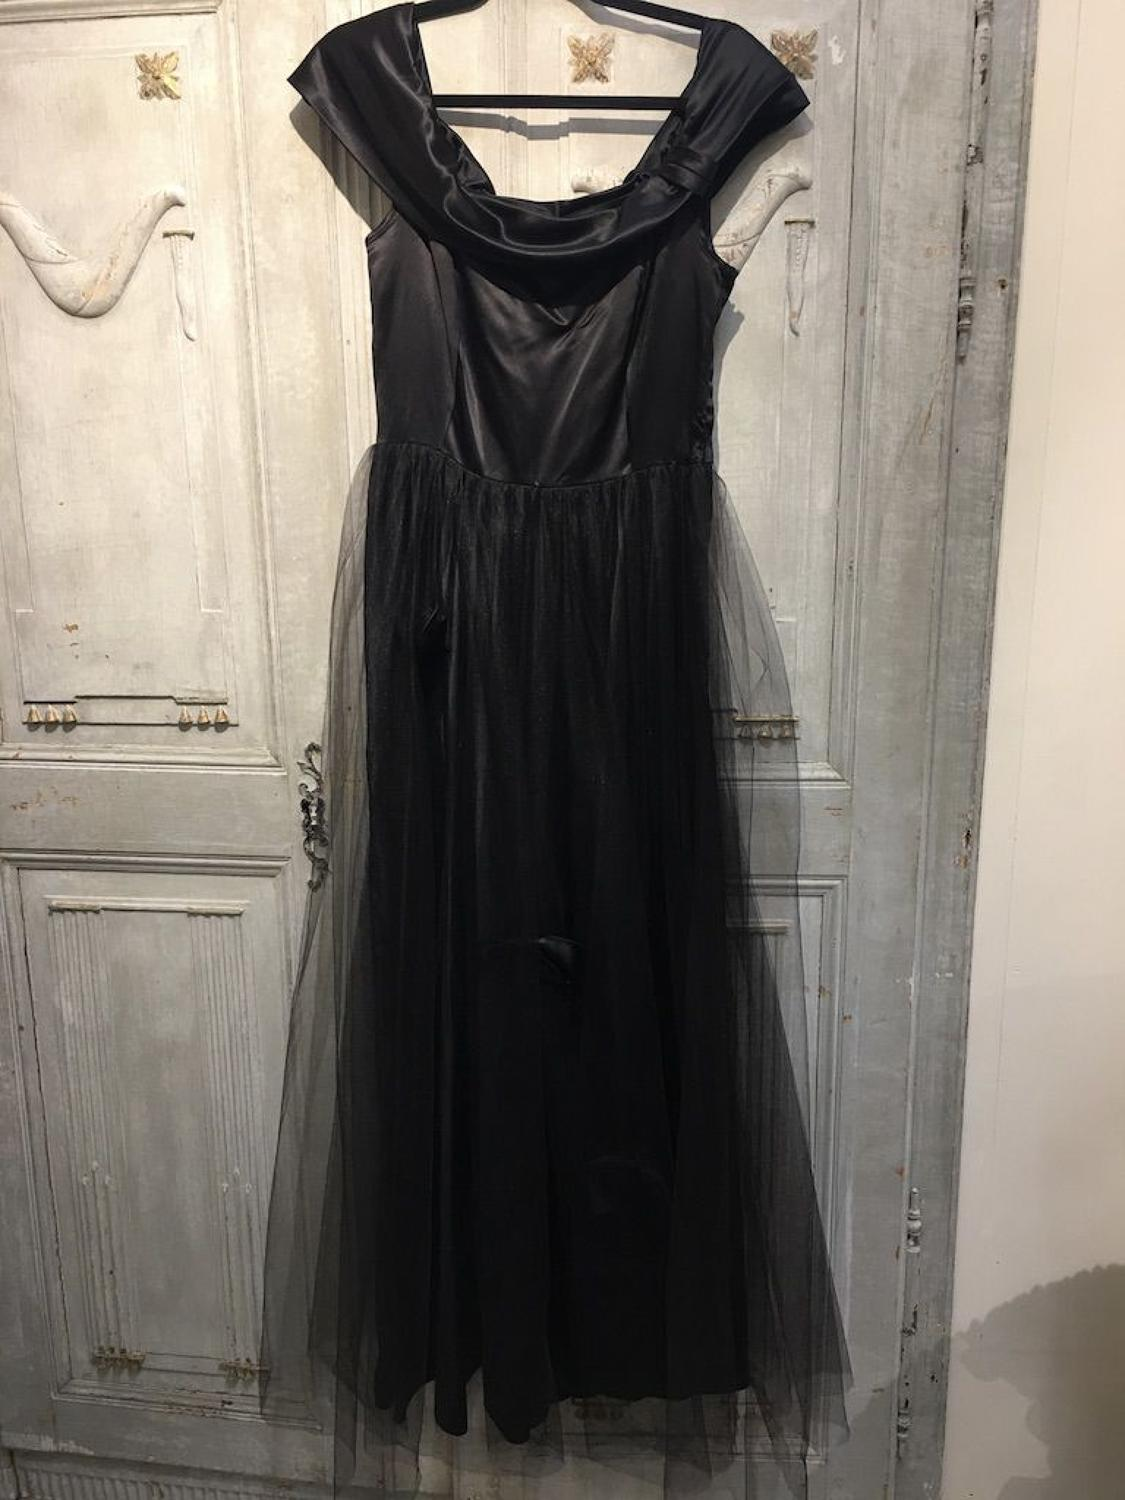 Vintage black satin and net evening dress